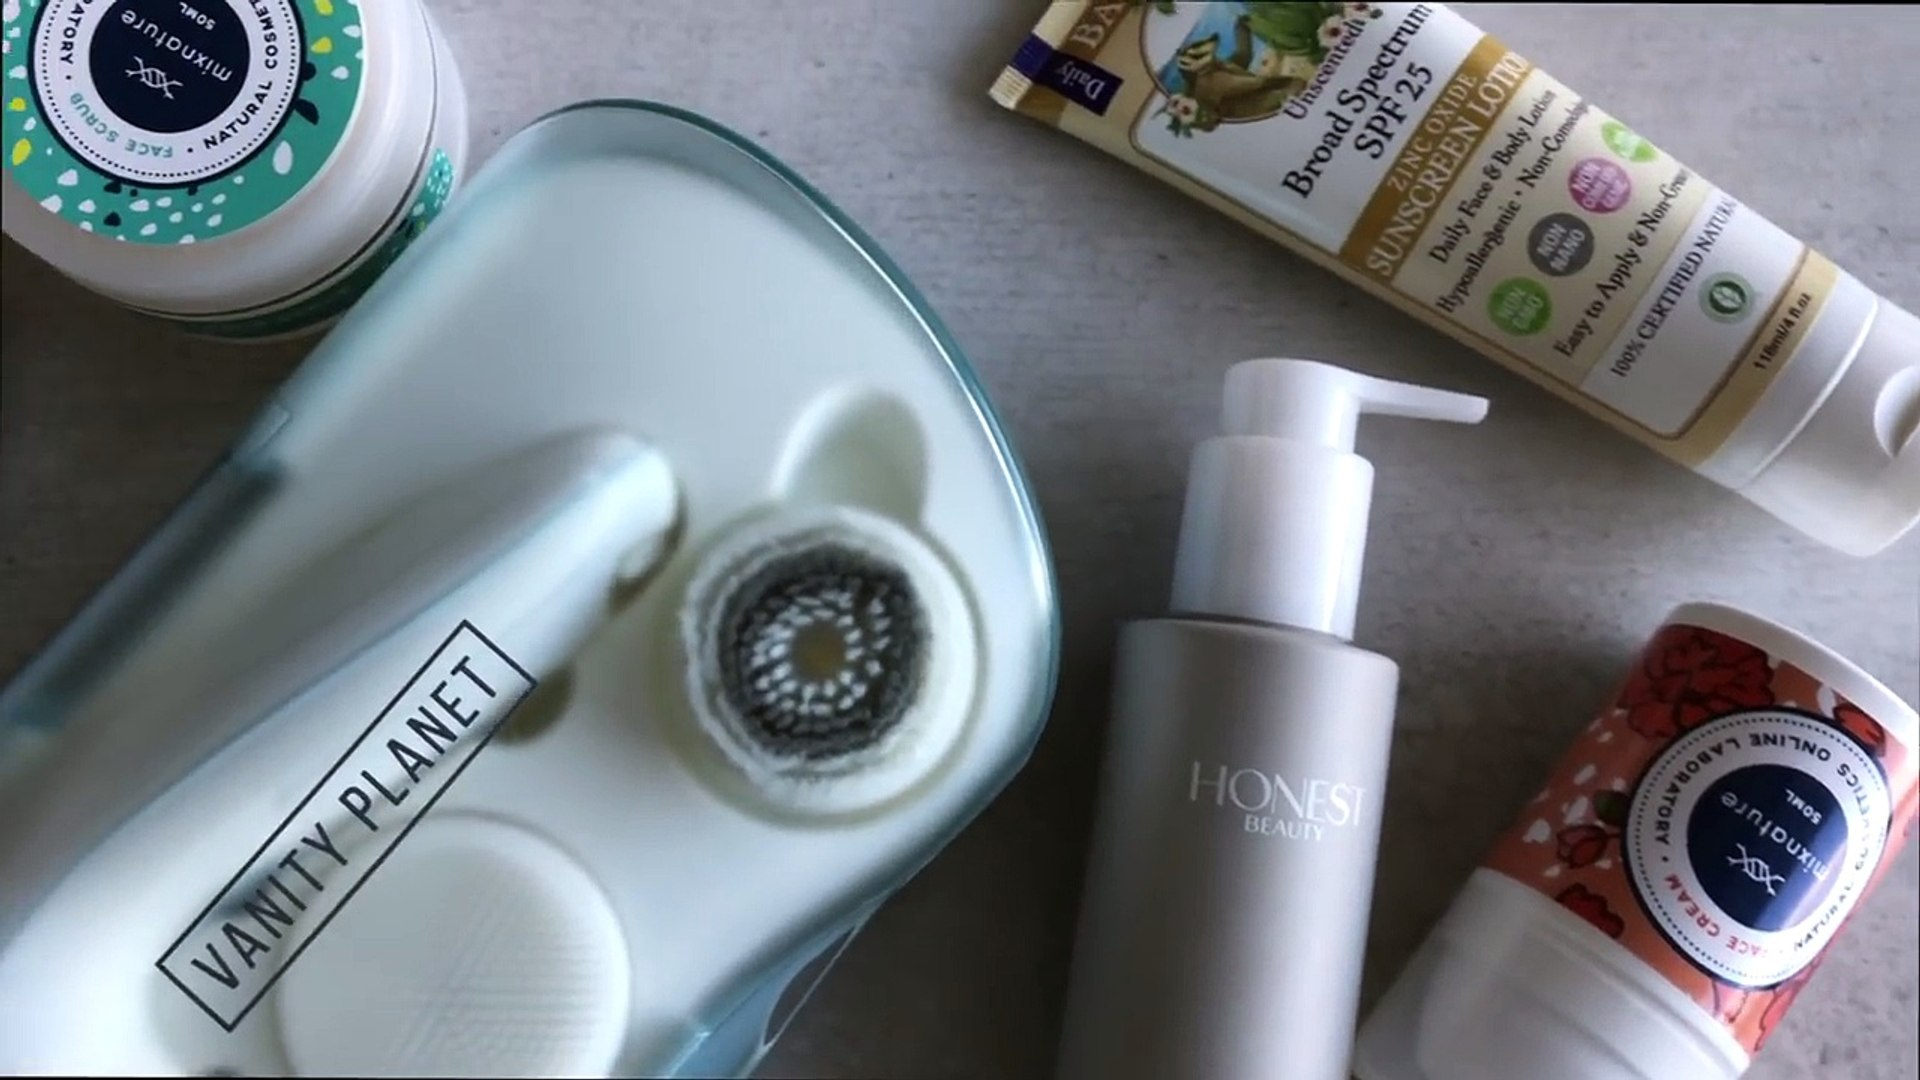 MY MORNING ROUTINE - EVERYDAY SKINCARE 2017